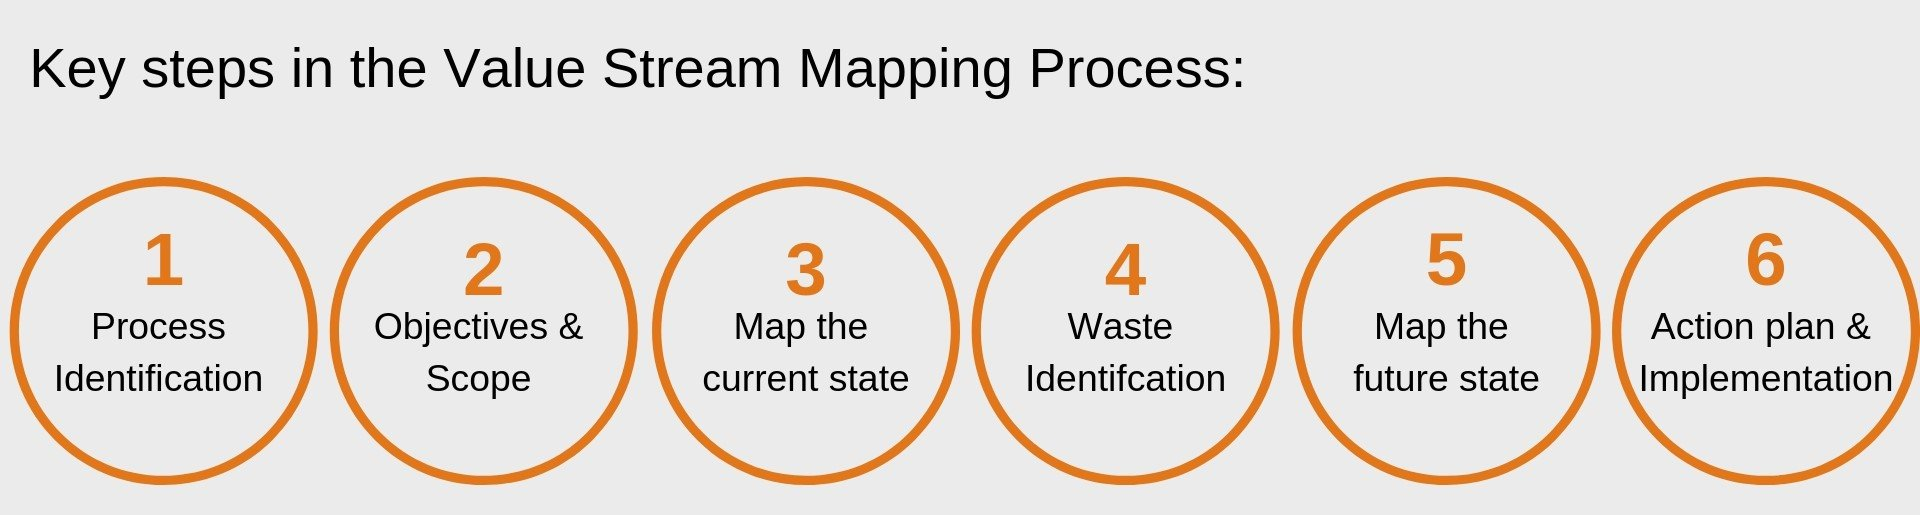 Value stream map process in apparel industry